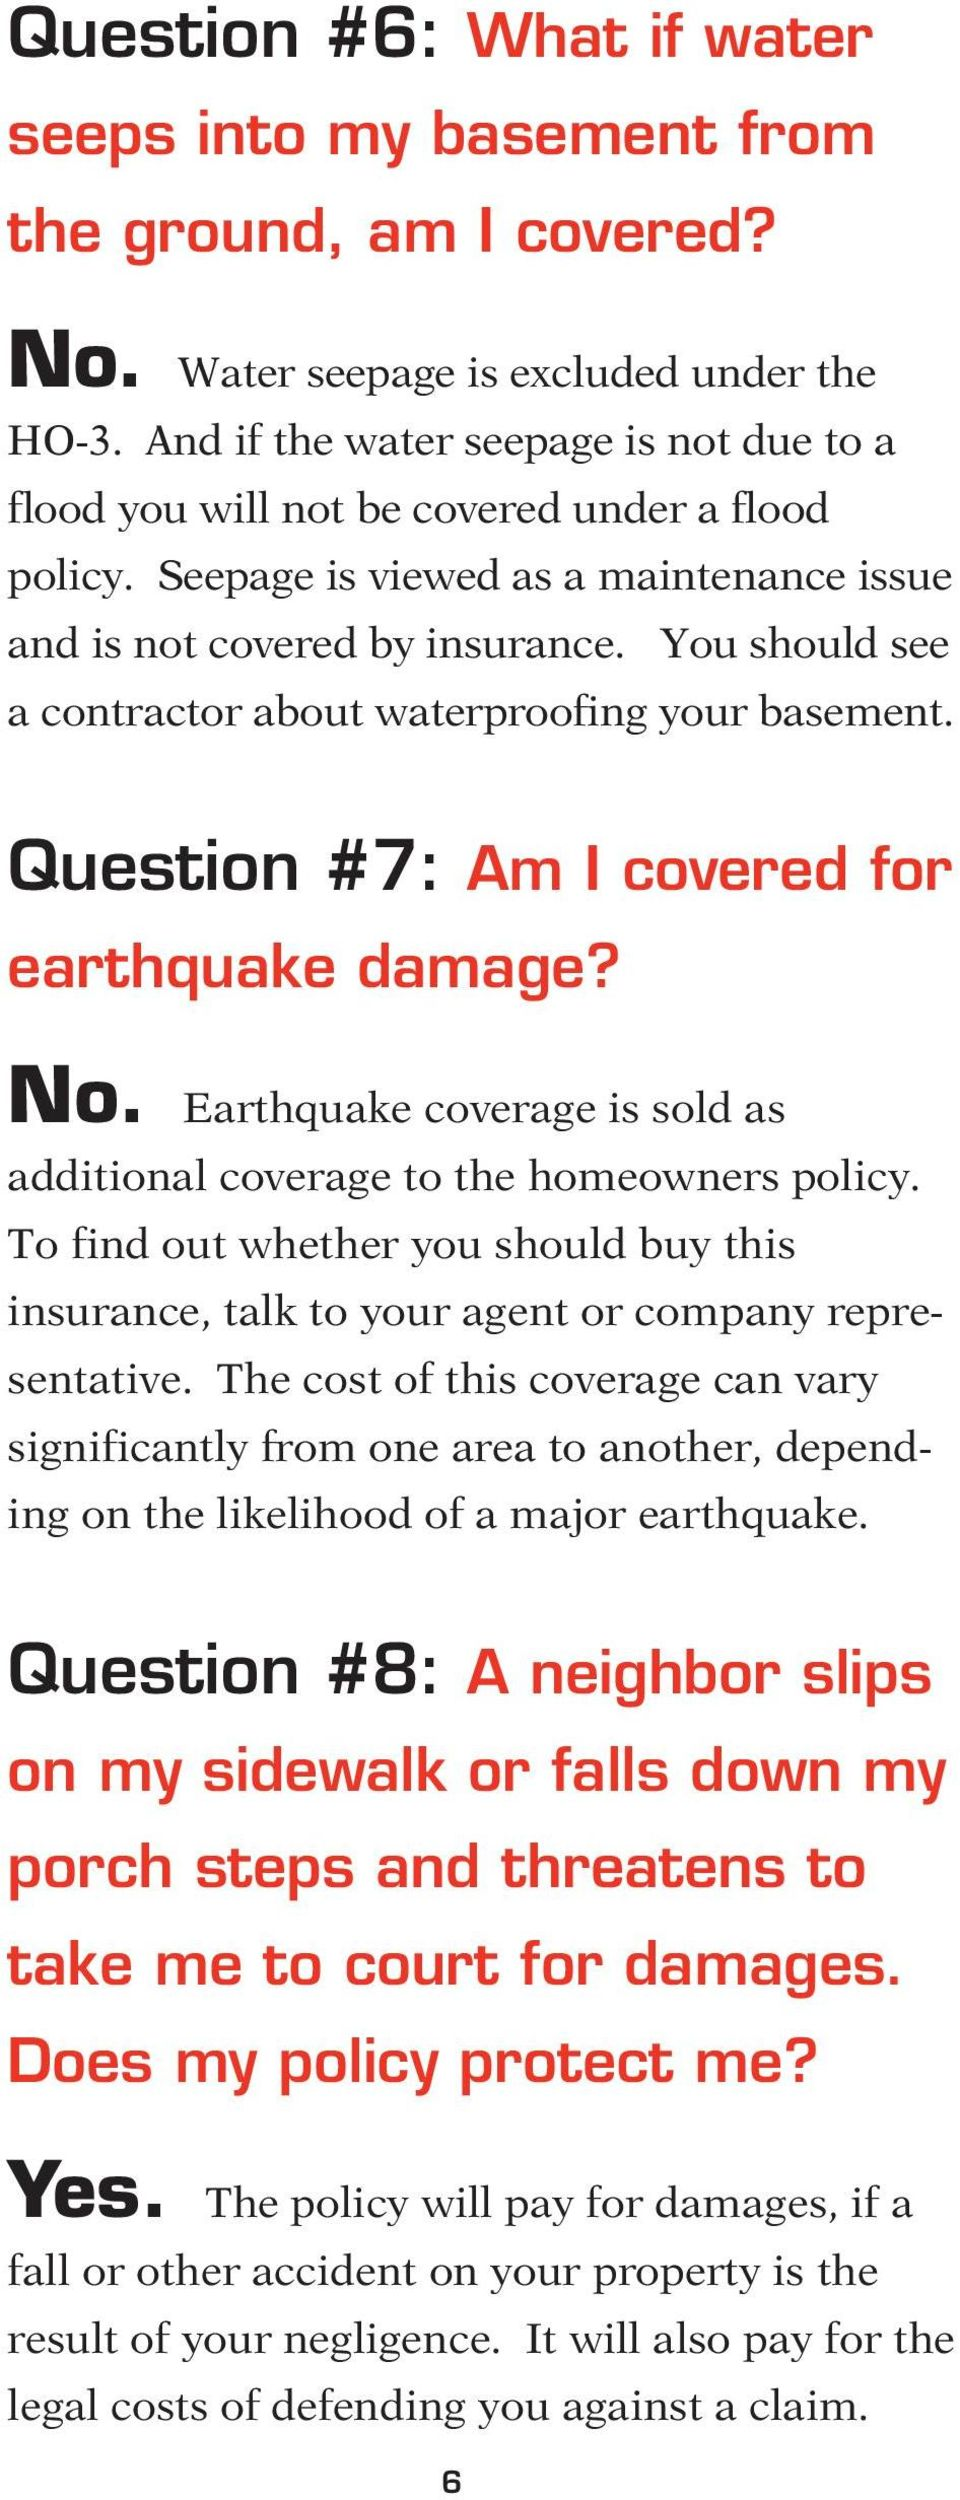 You should see a contractor about waterproofing your basement. Question #7: Am I covered for earthquake damage? No. Earthquake coverage is sold as additional coverage to the homeowners policy.